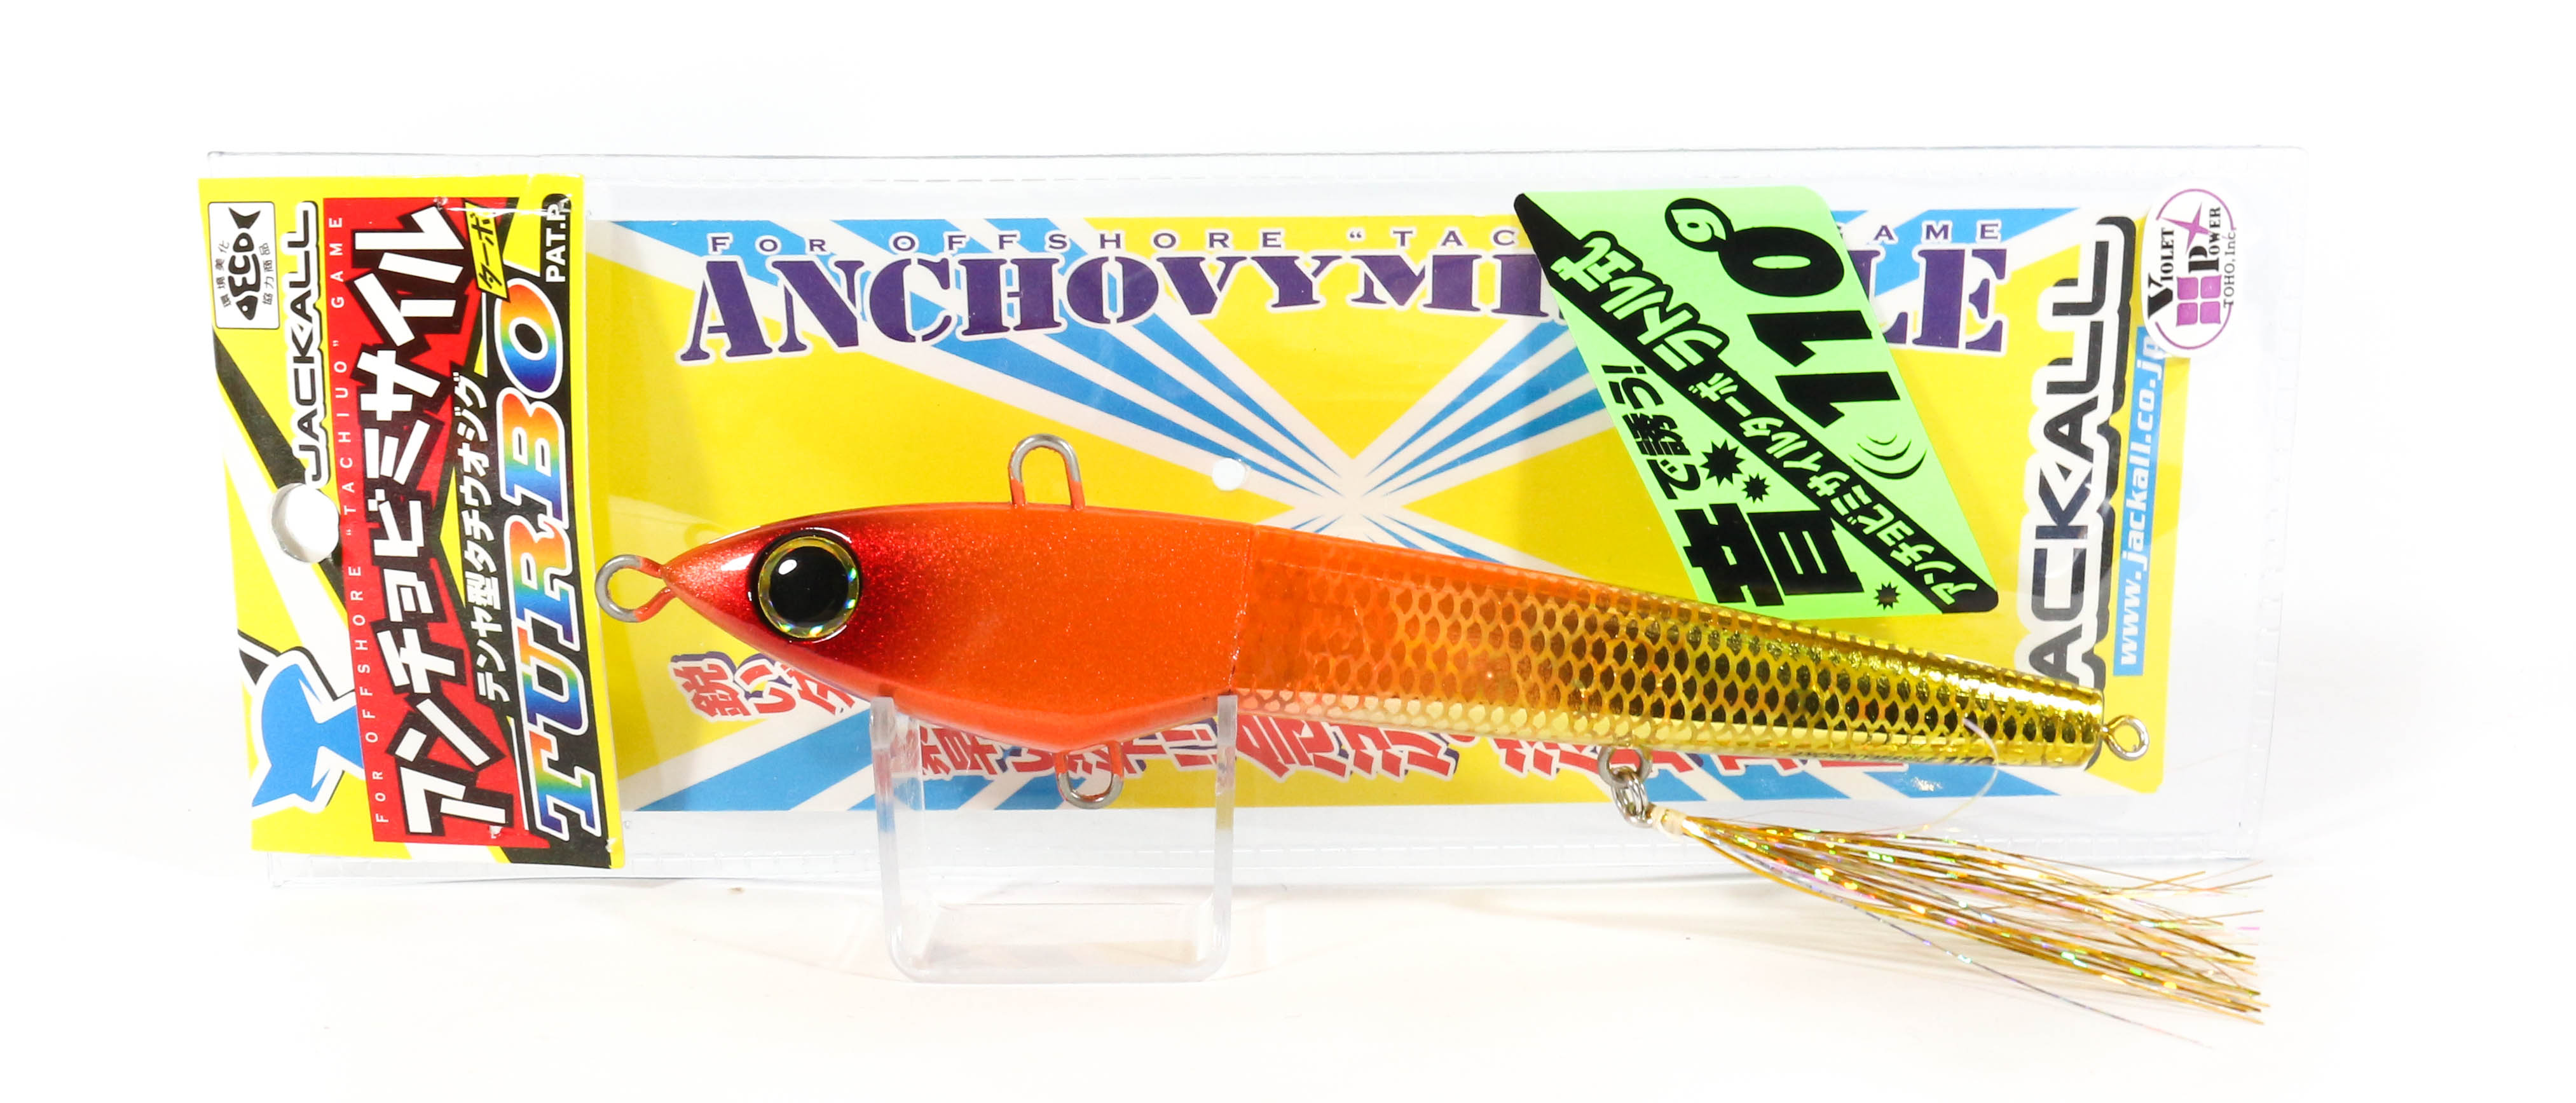 Sale Jackall Anchovy Missile Turbo RattleShiki Jig 110 grams Orange Gold (5474)